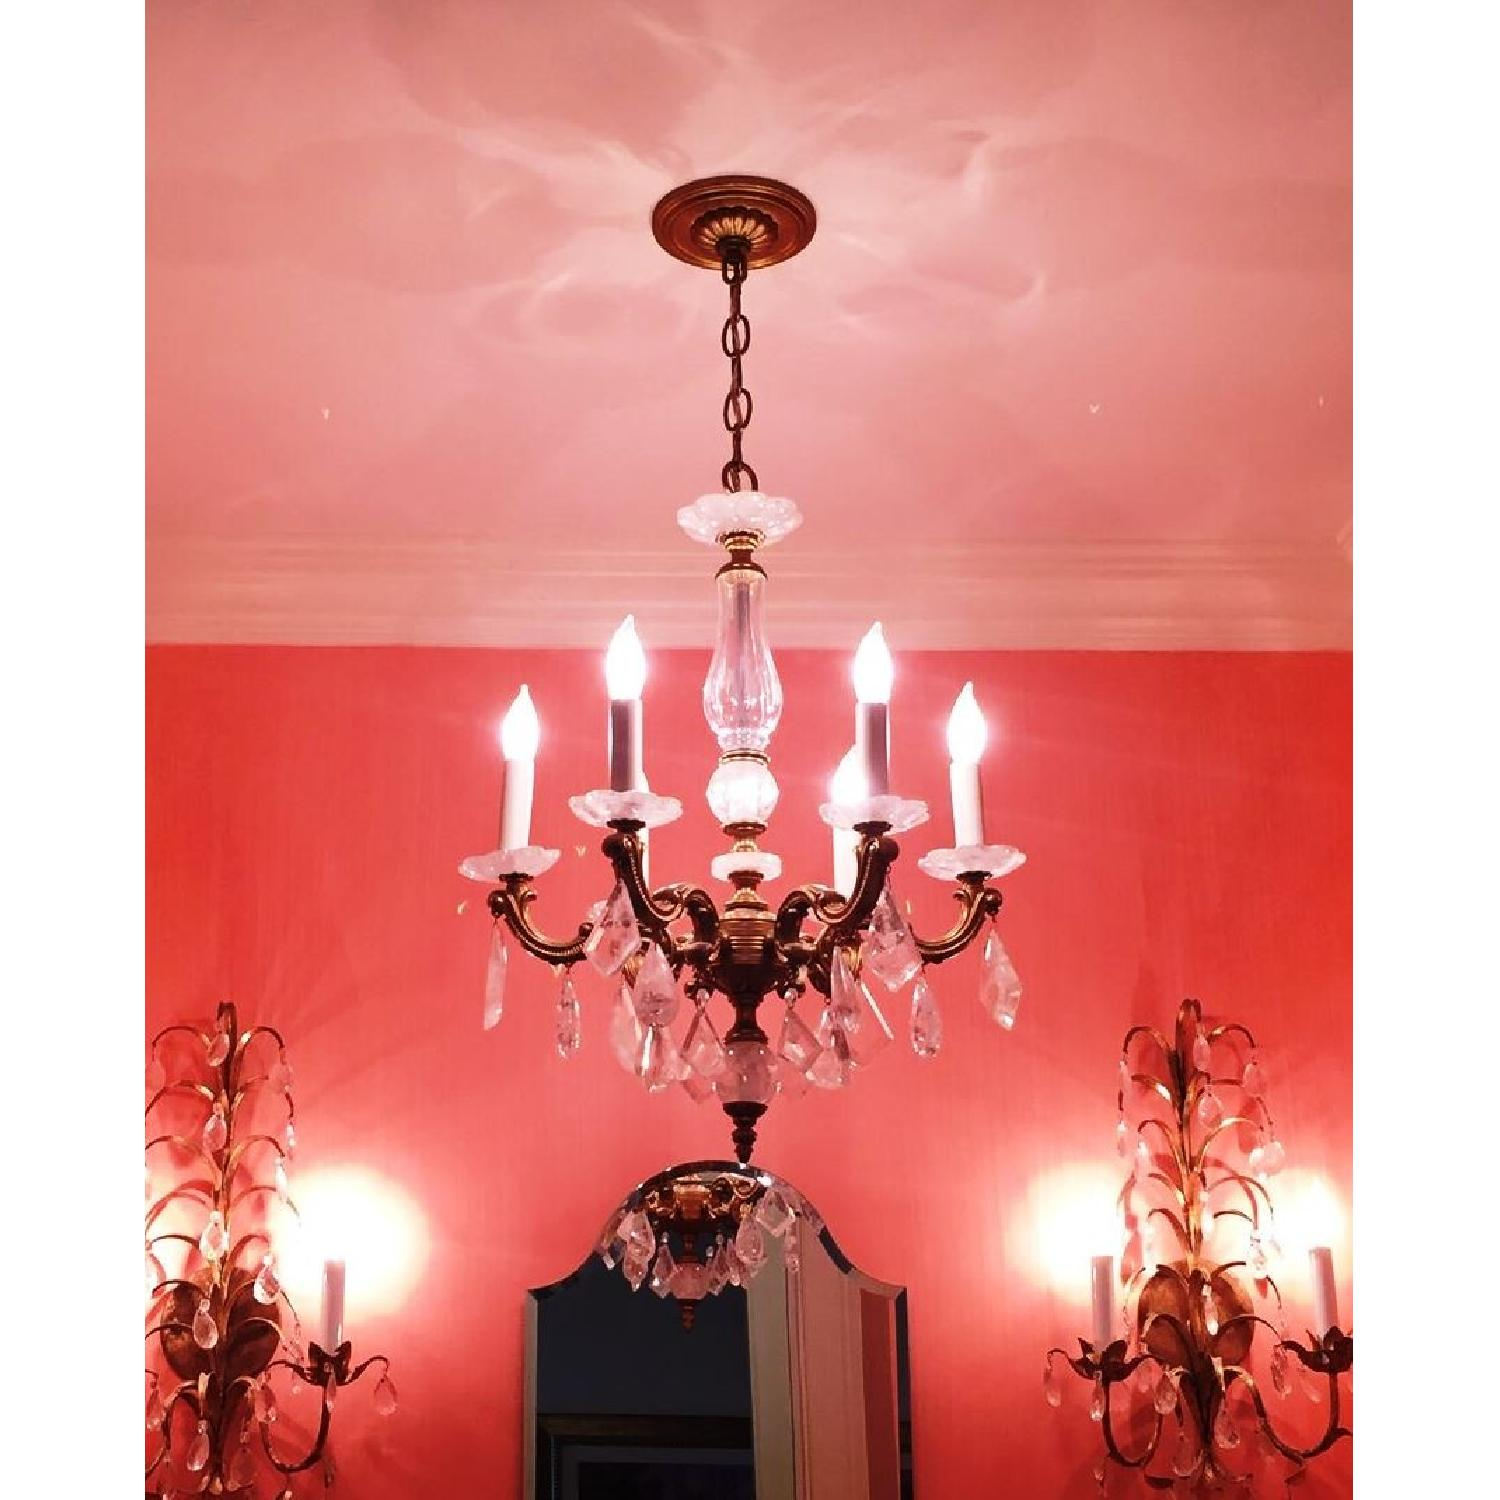 ABC Carpet & Home Brass & Glass Rock Crystal Chandelier - image-1